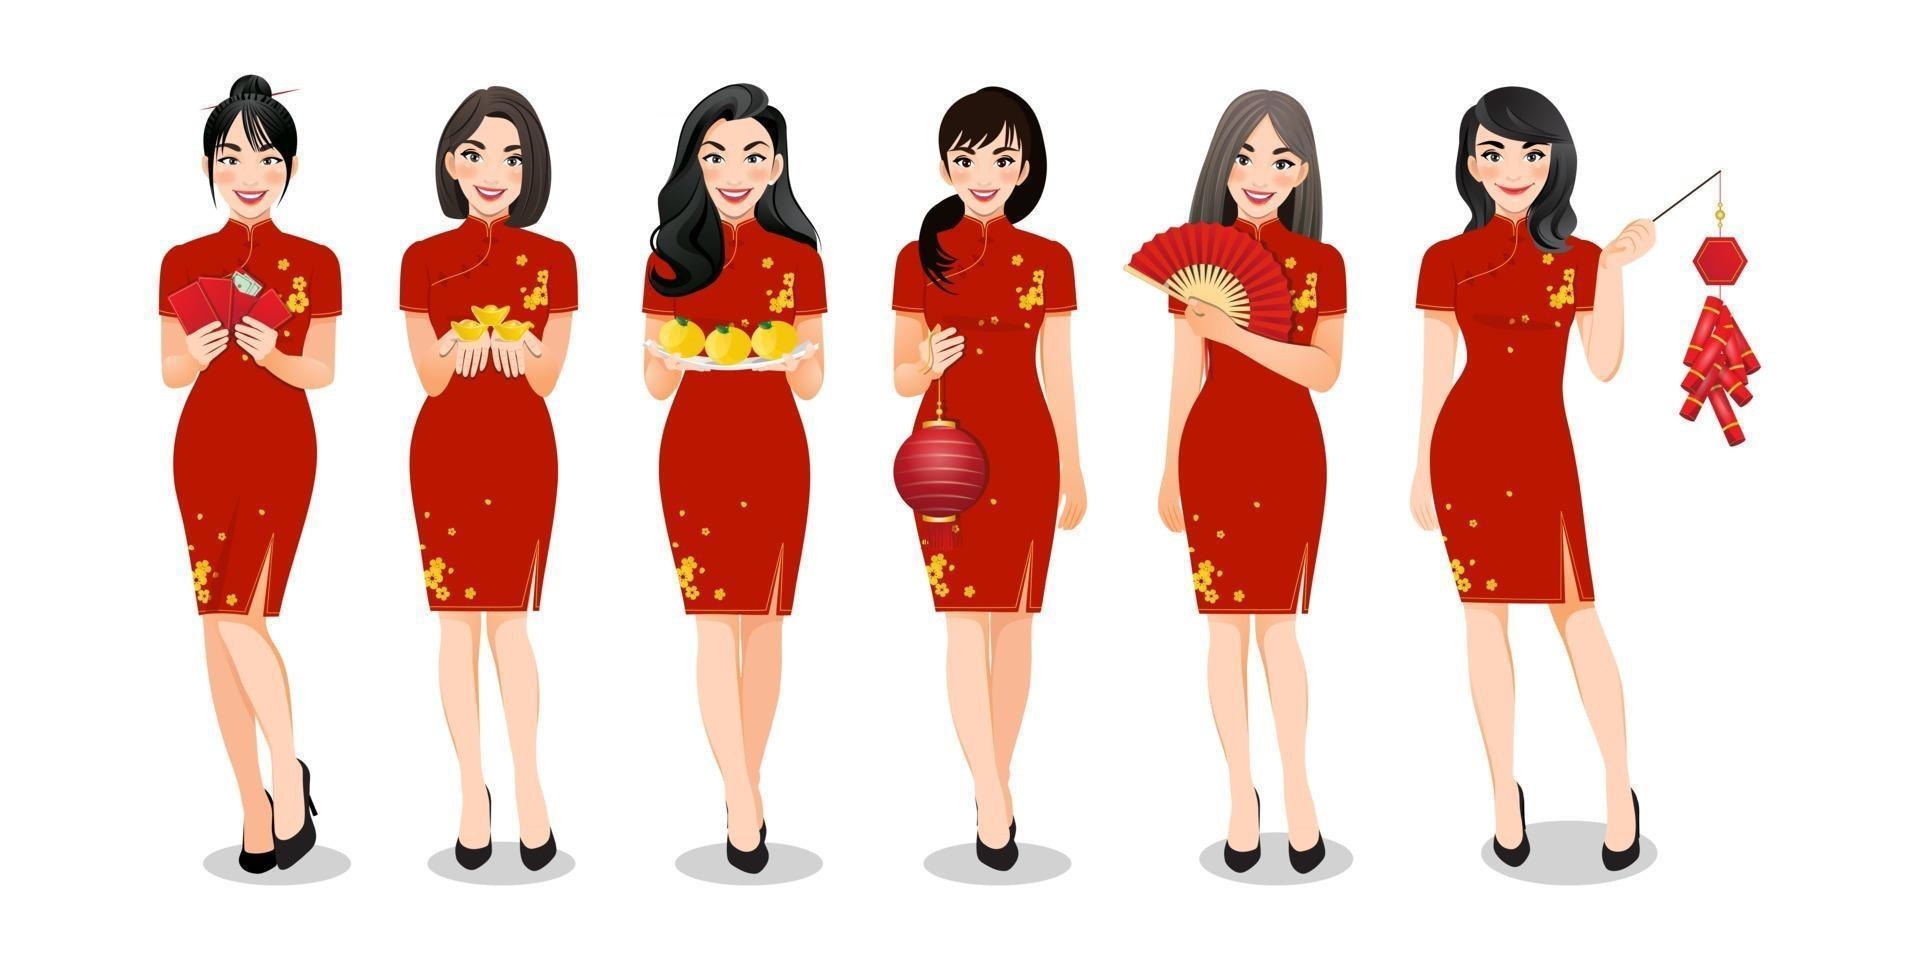 Chinese women's group holding Chinese new year elements in traditional style clothes set and different gestures isolated vector illustration